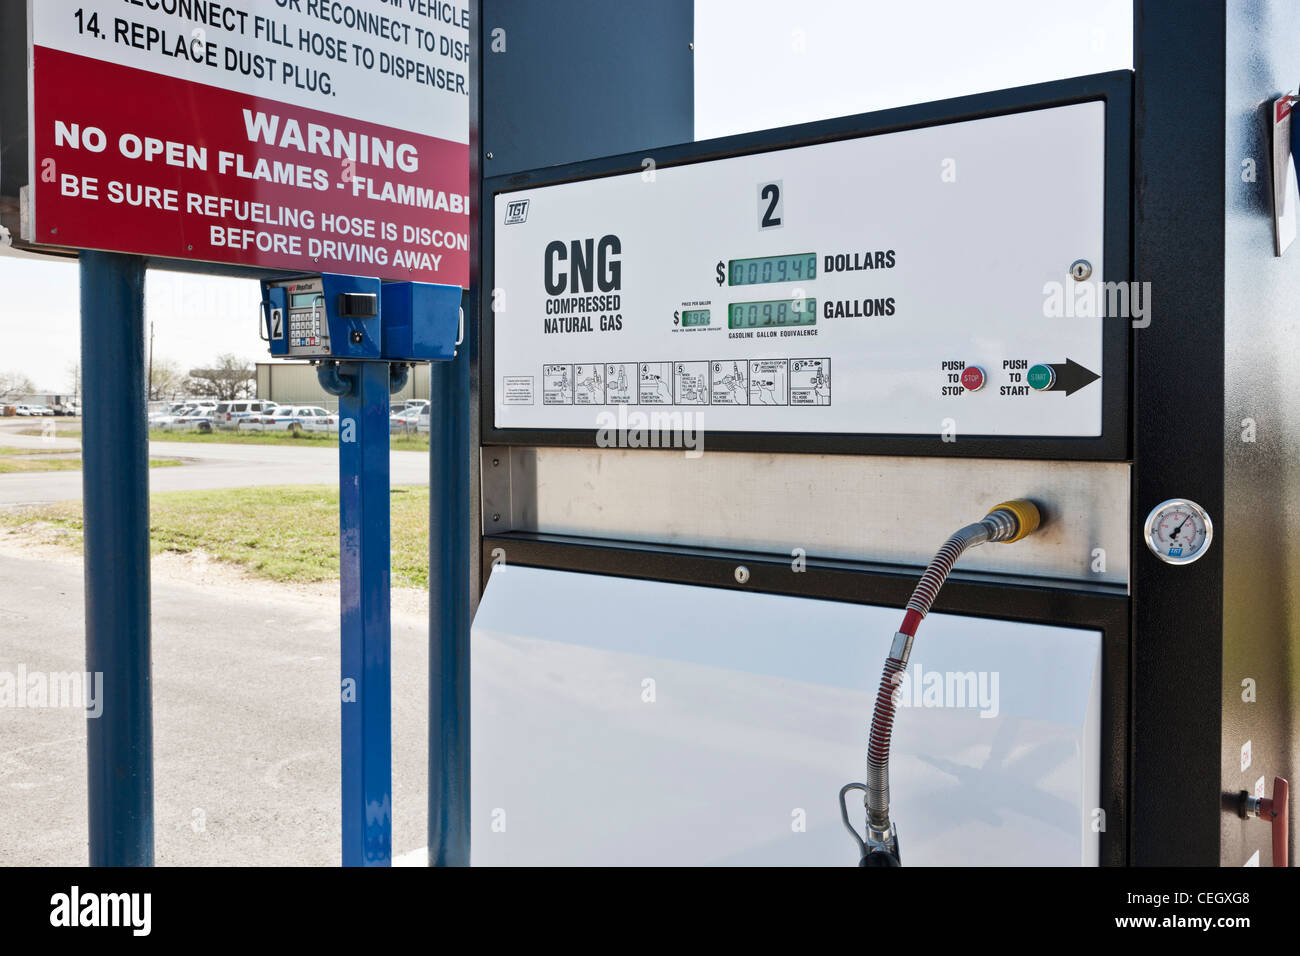 Compressed natural gas fuel pump. - Stock Image